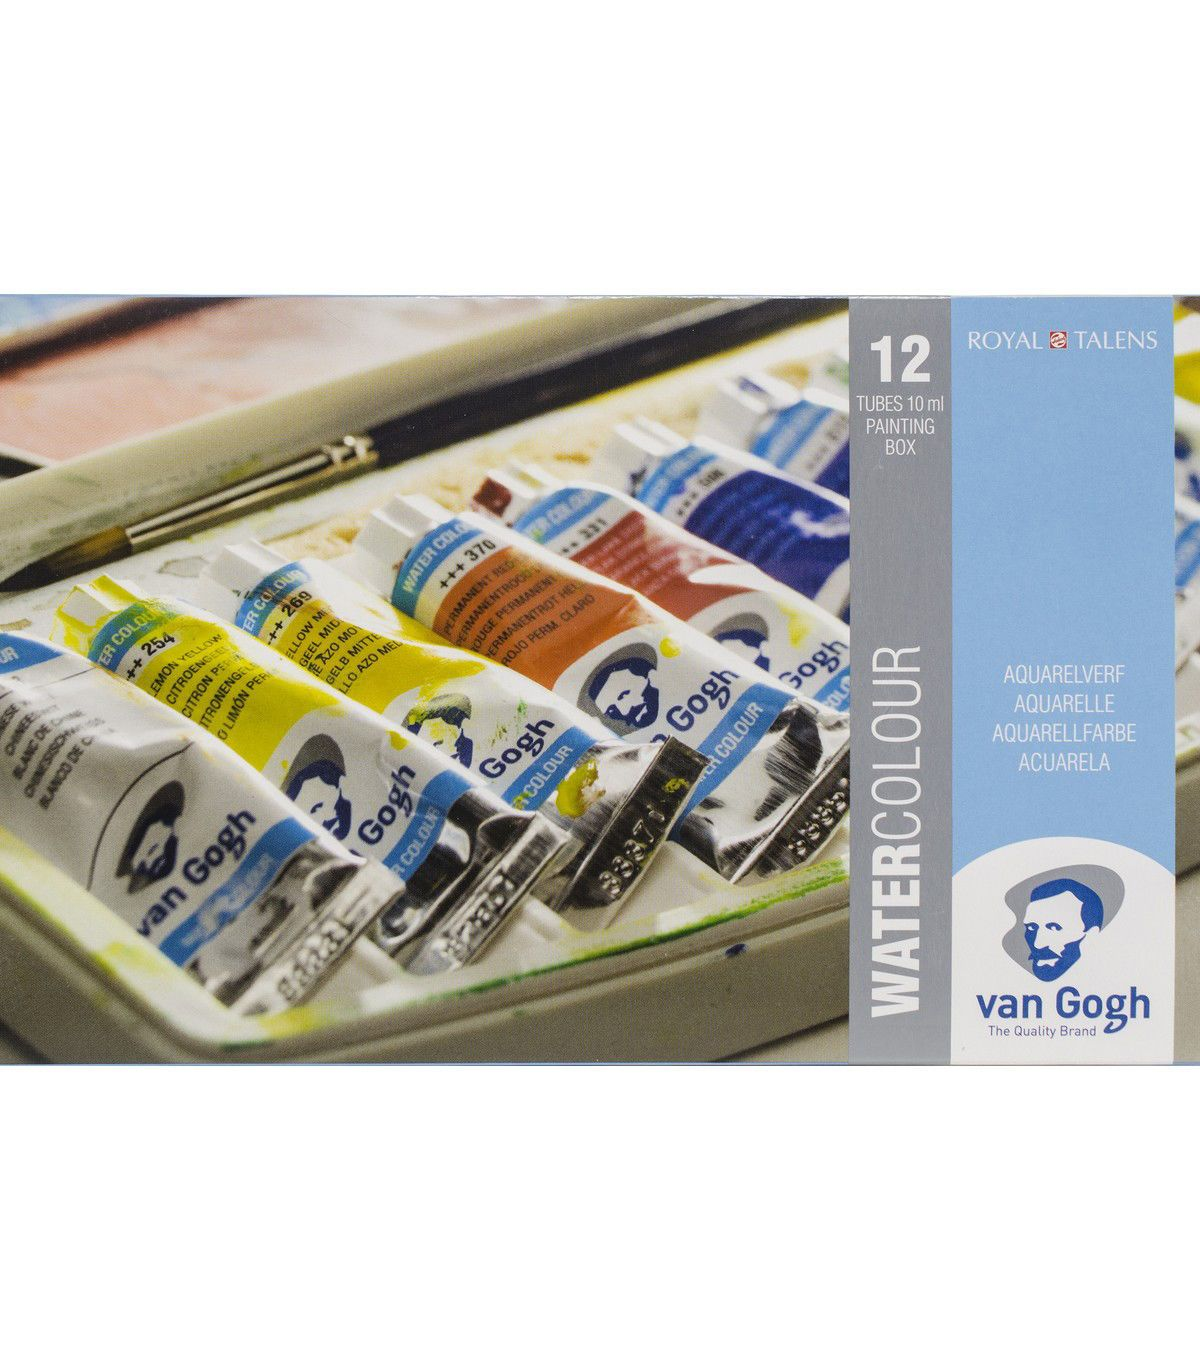 Van Gogh Watercolour 12 Tubes Plastic Pocket Box Products Van